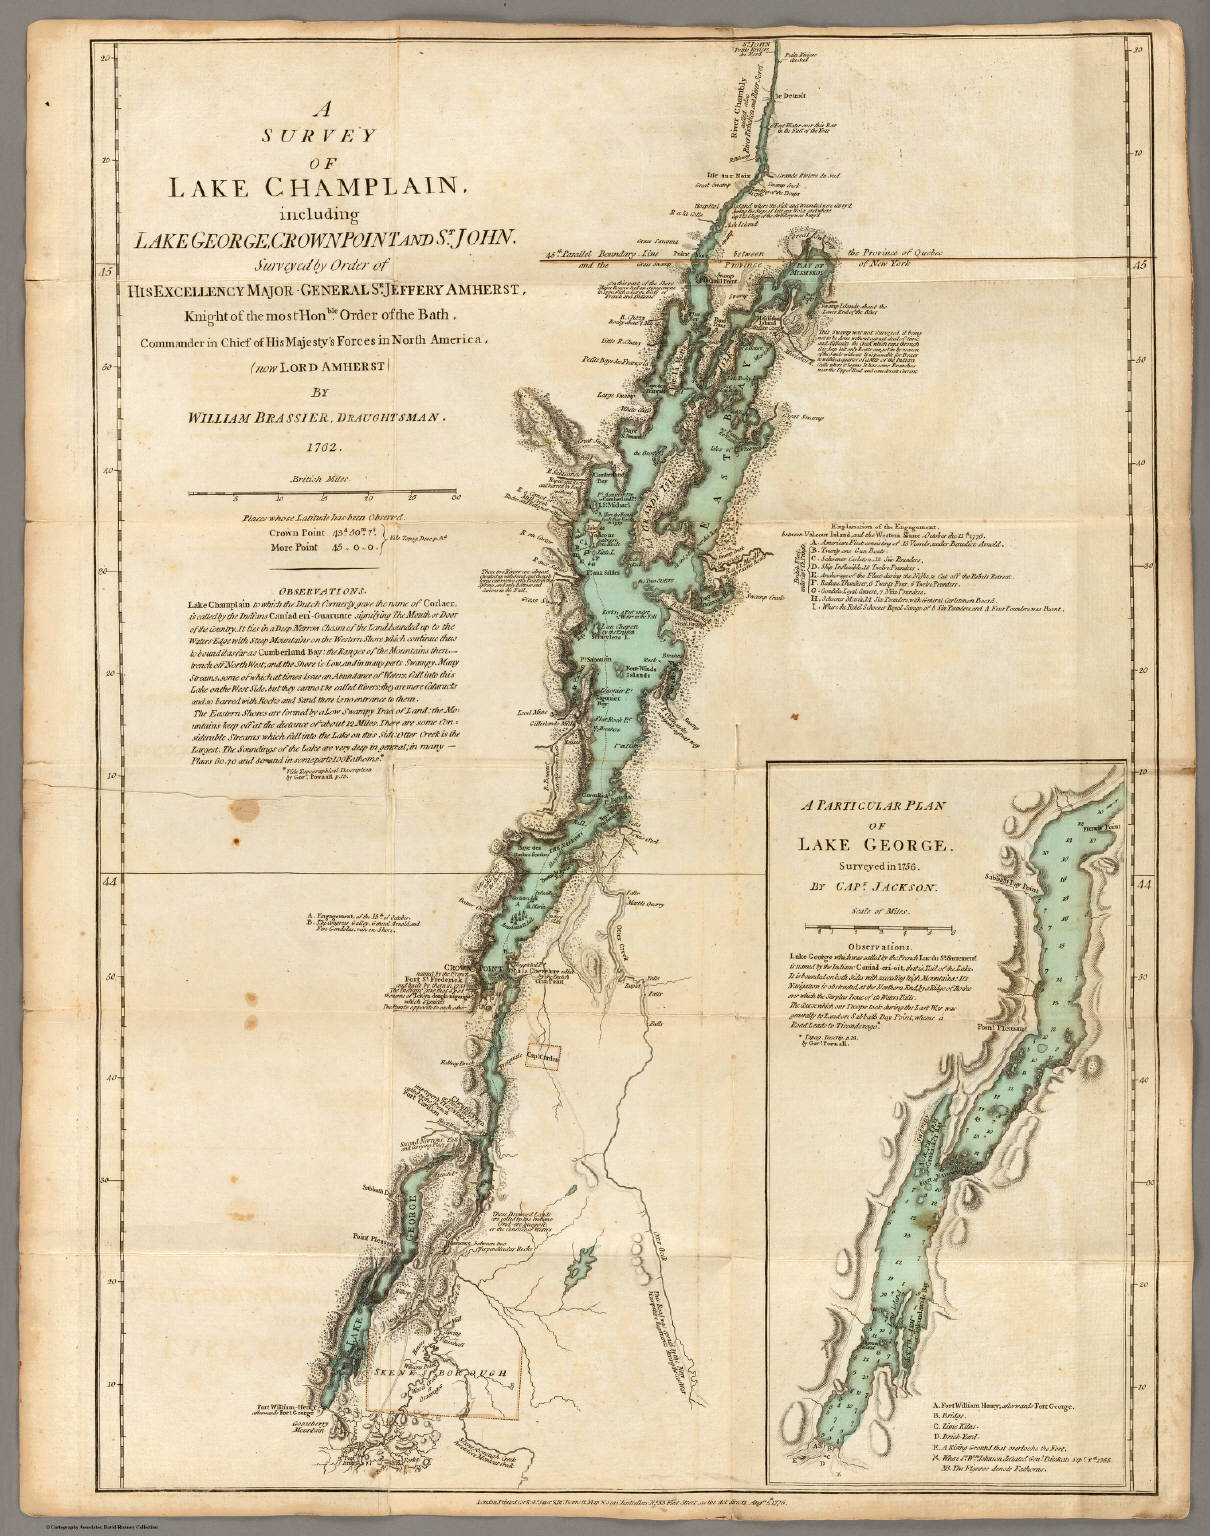 A Survey of Lake Champlain, including Lake George, Crown Point and St. John.